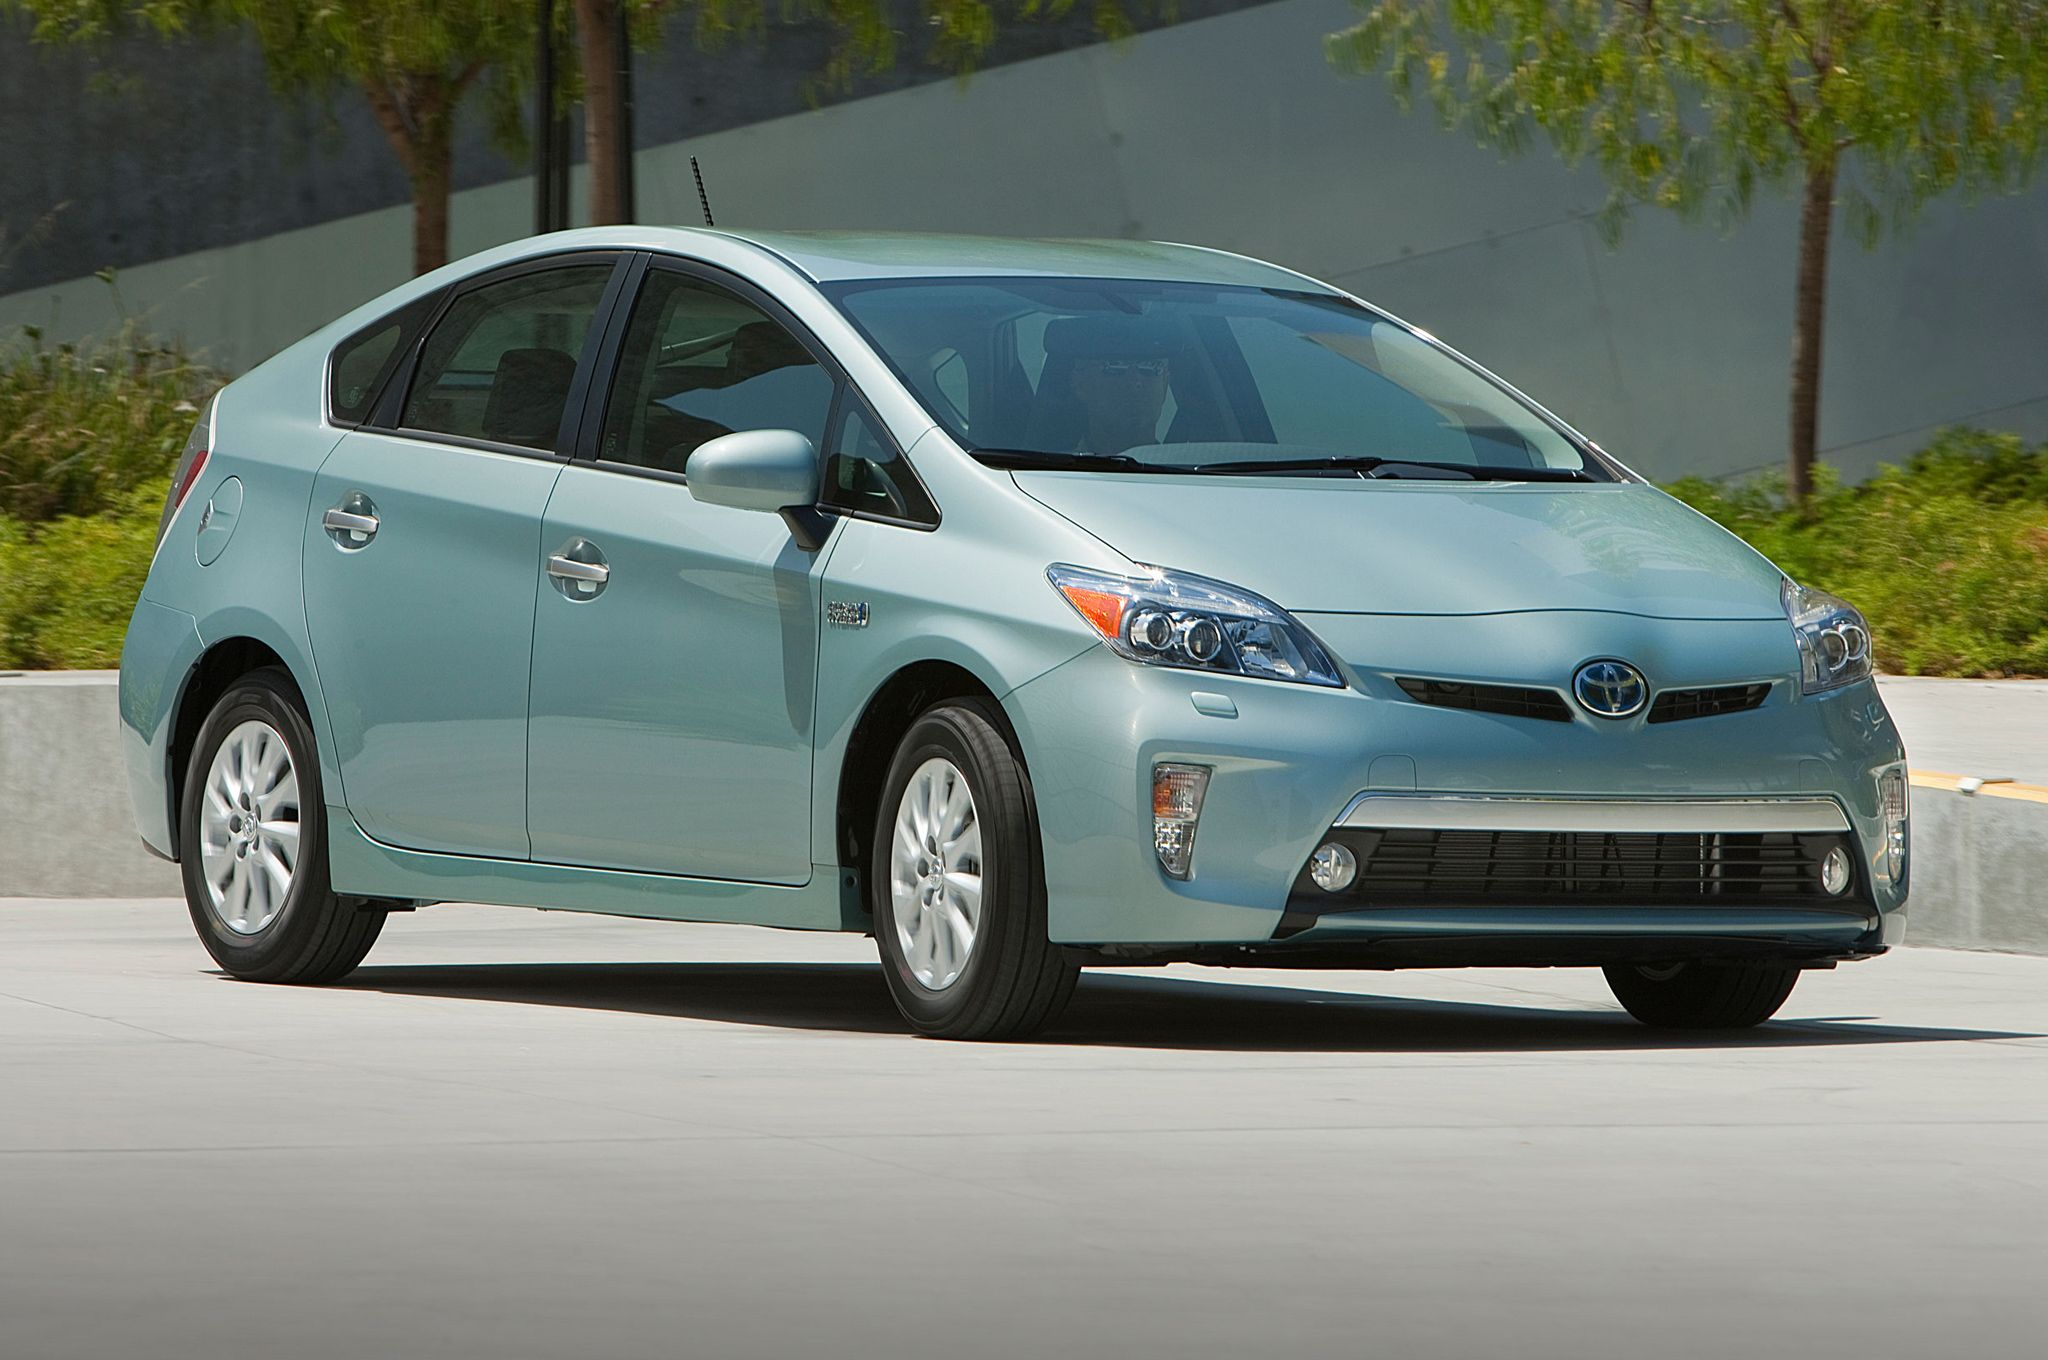 2014 Toyota Prius Plug In Prices Slashed 2010 4620 Toyota